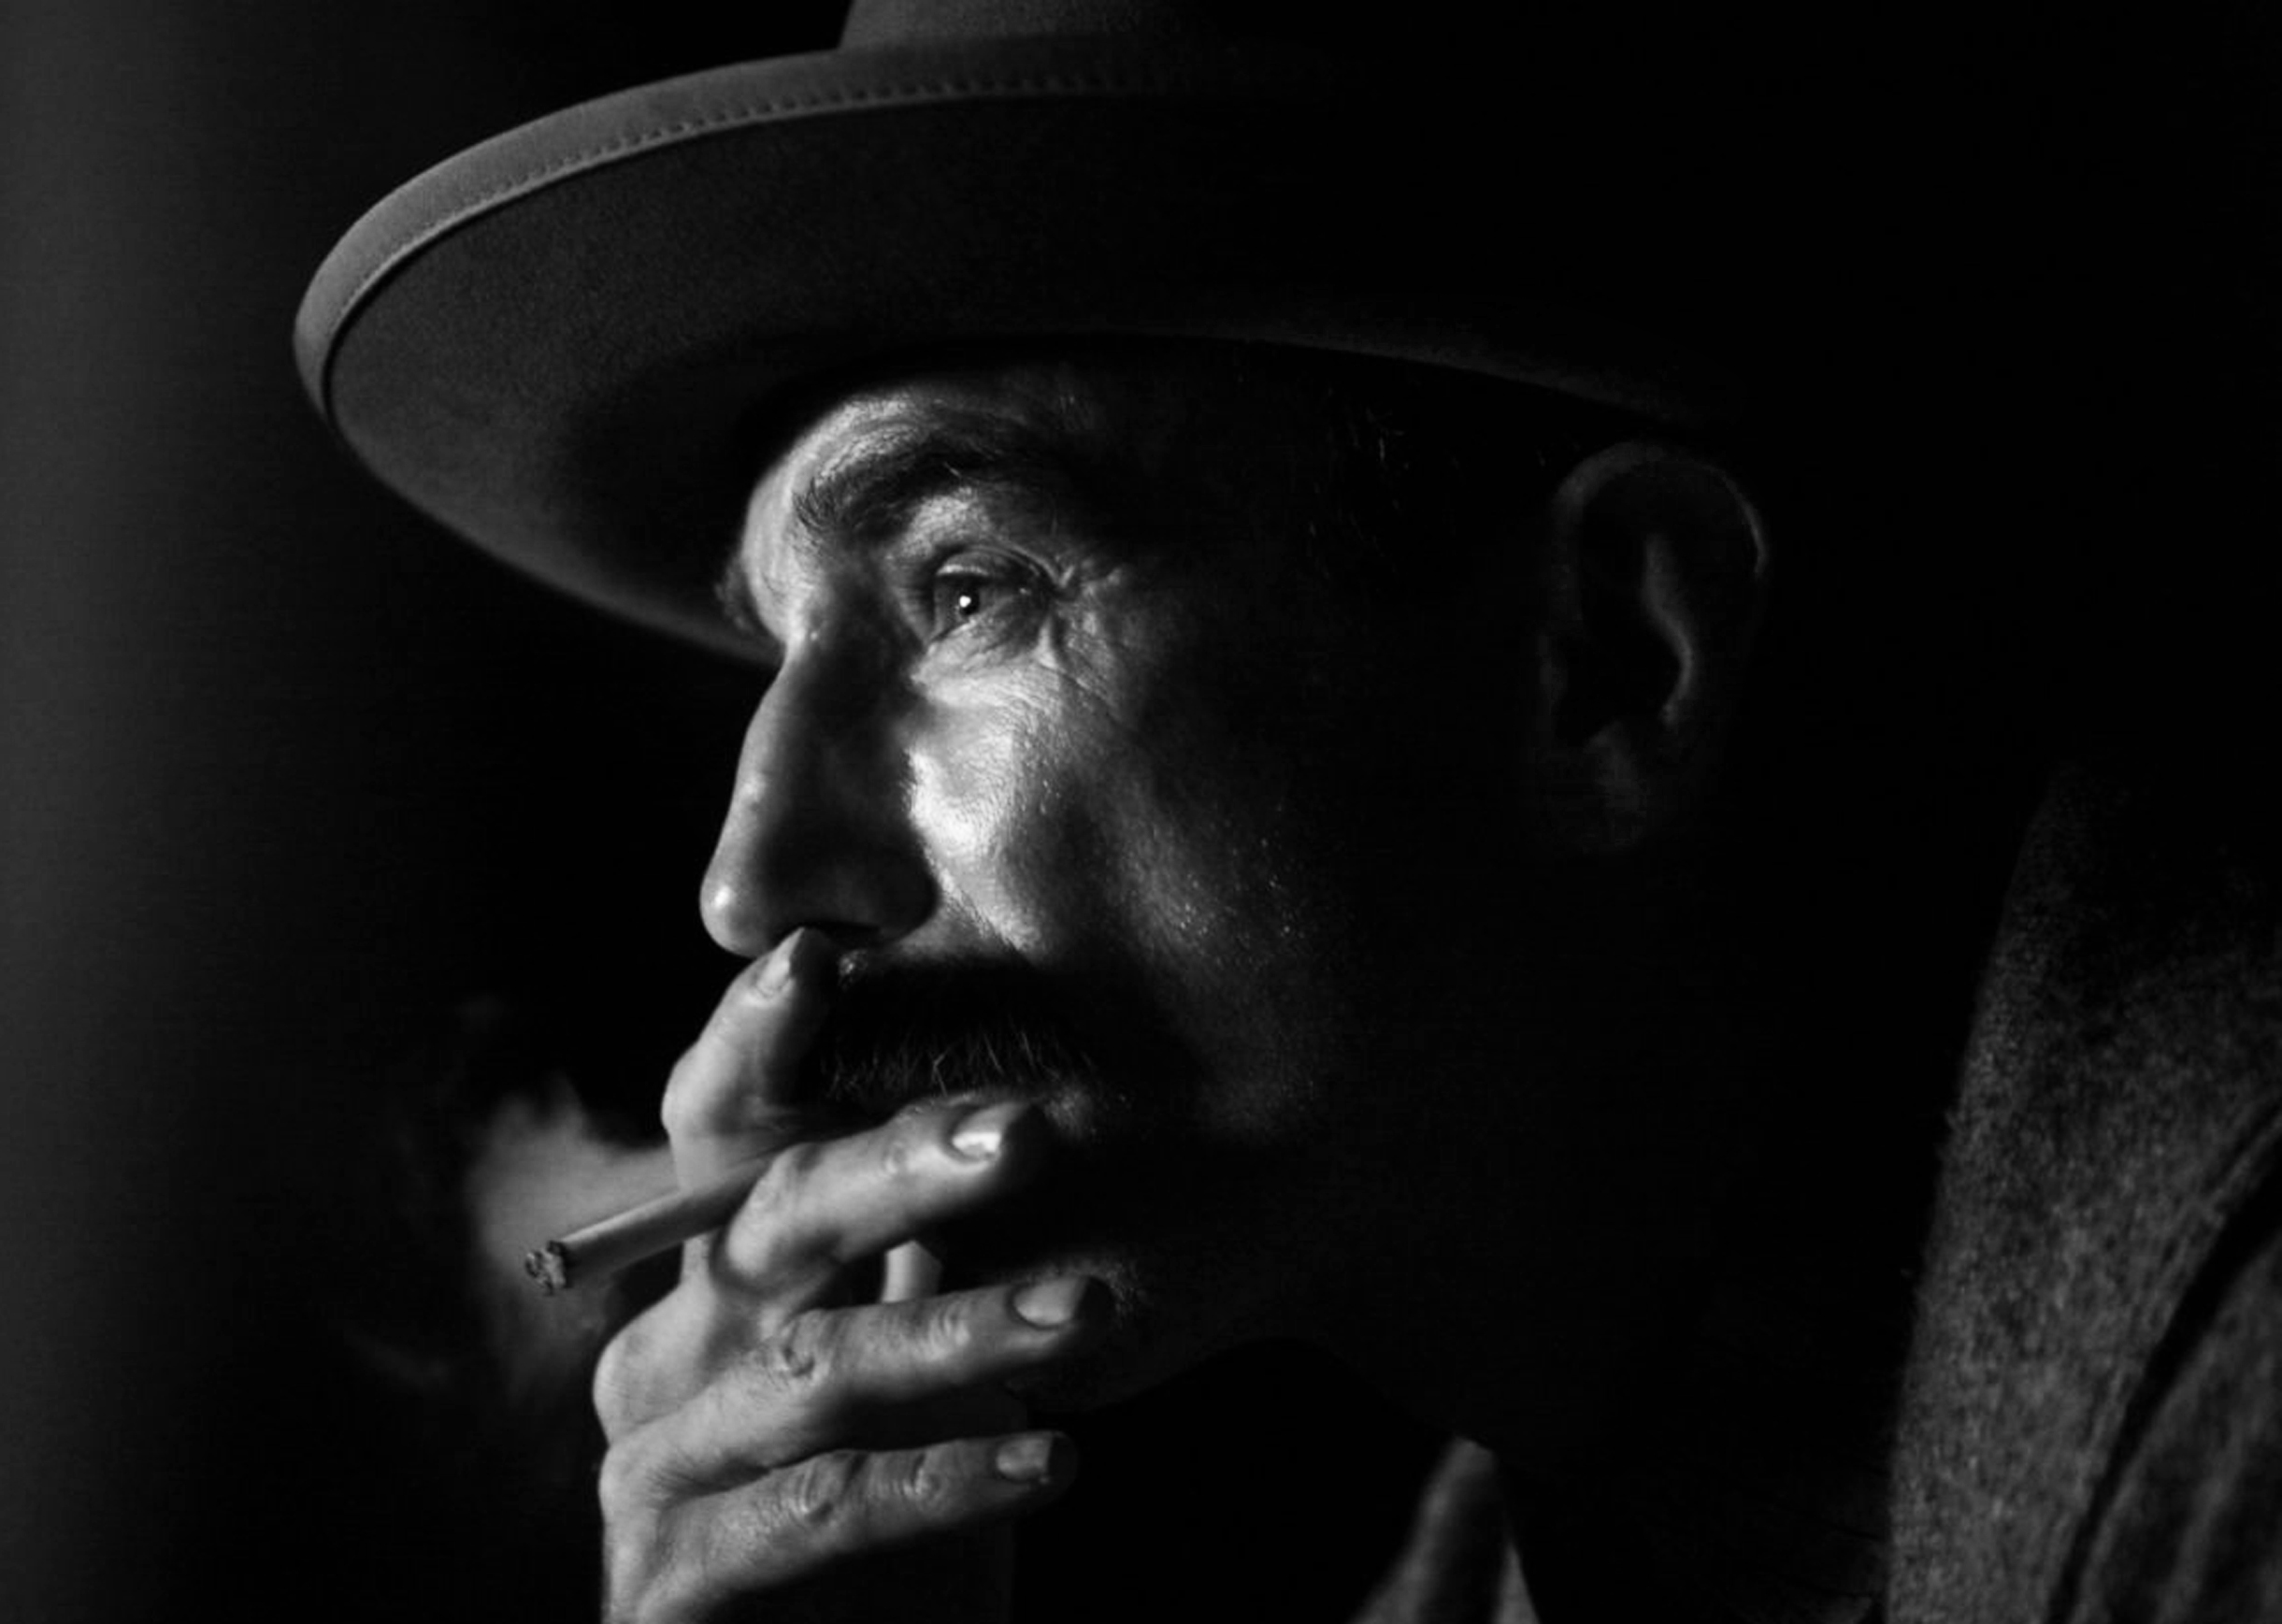 Daniel Day-Lewis won an Academy Award for Best Performance by an Actor in a Leading Role for There Will Be Blood. This drama is centered around a turn-of-the-century prospector in the early days of a family business.